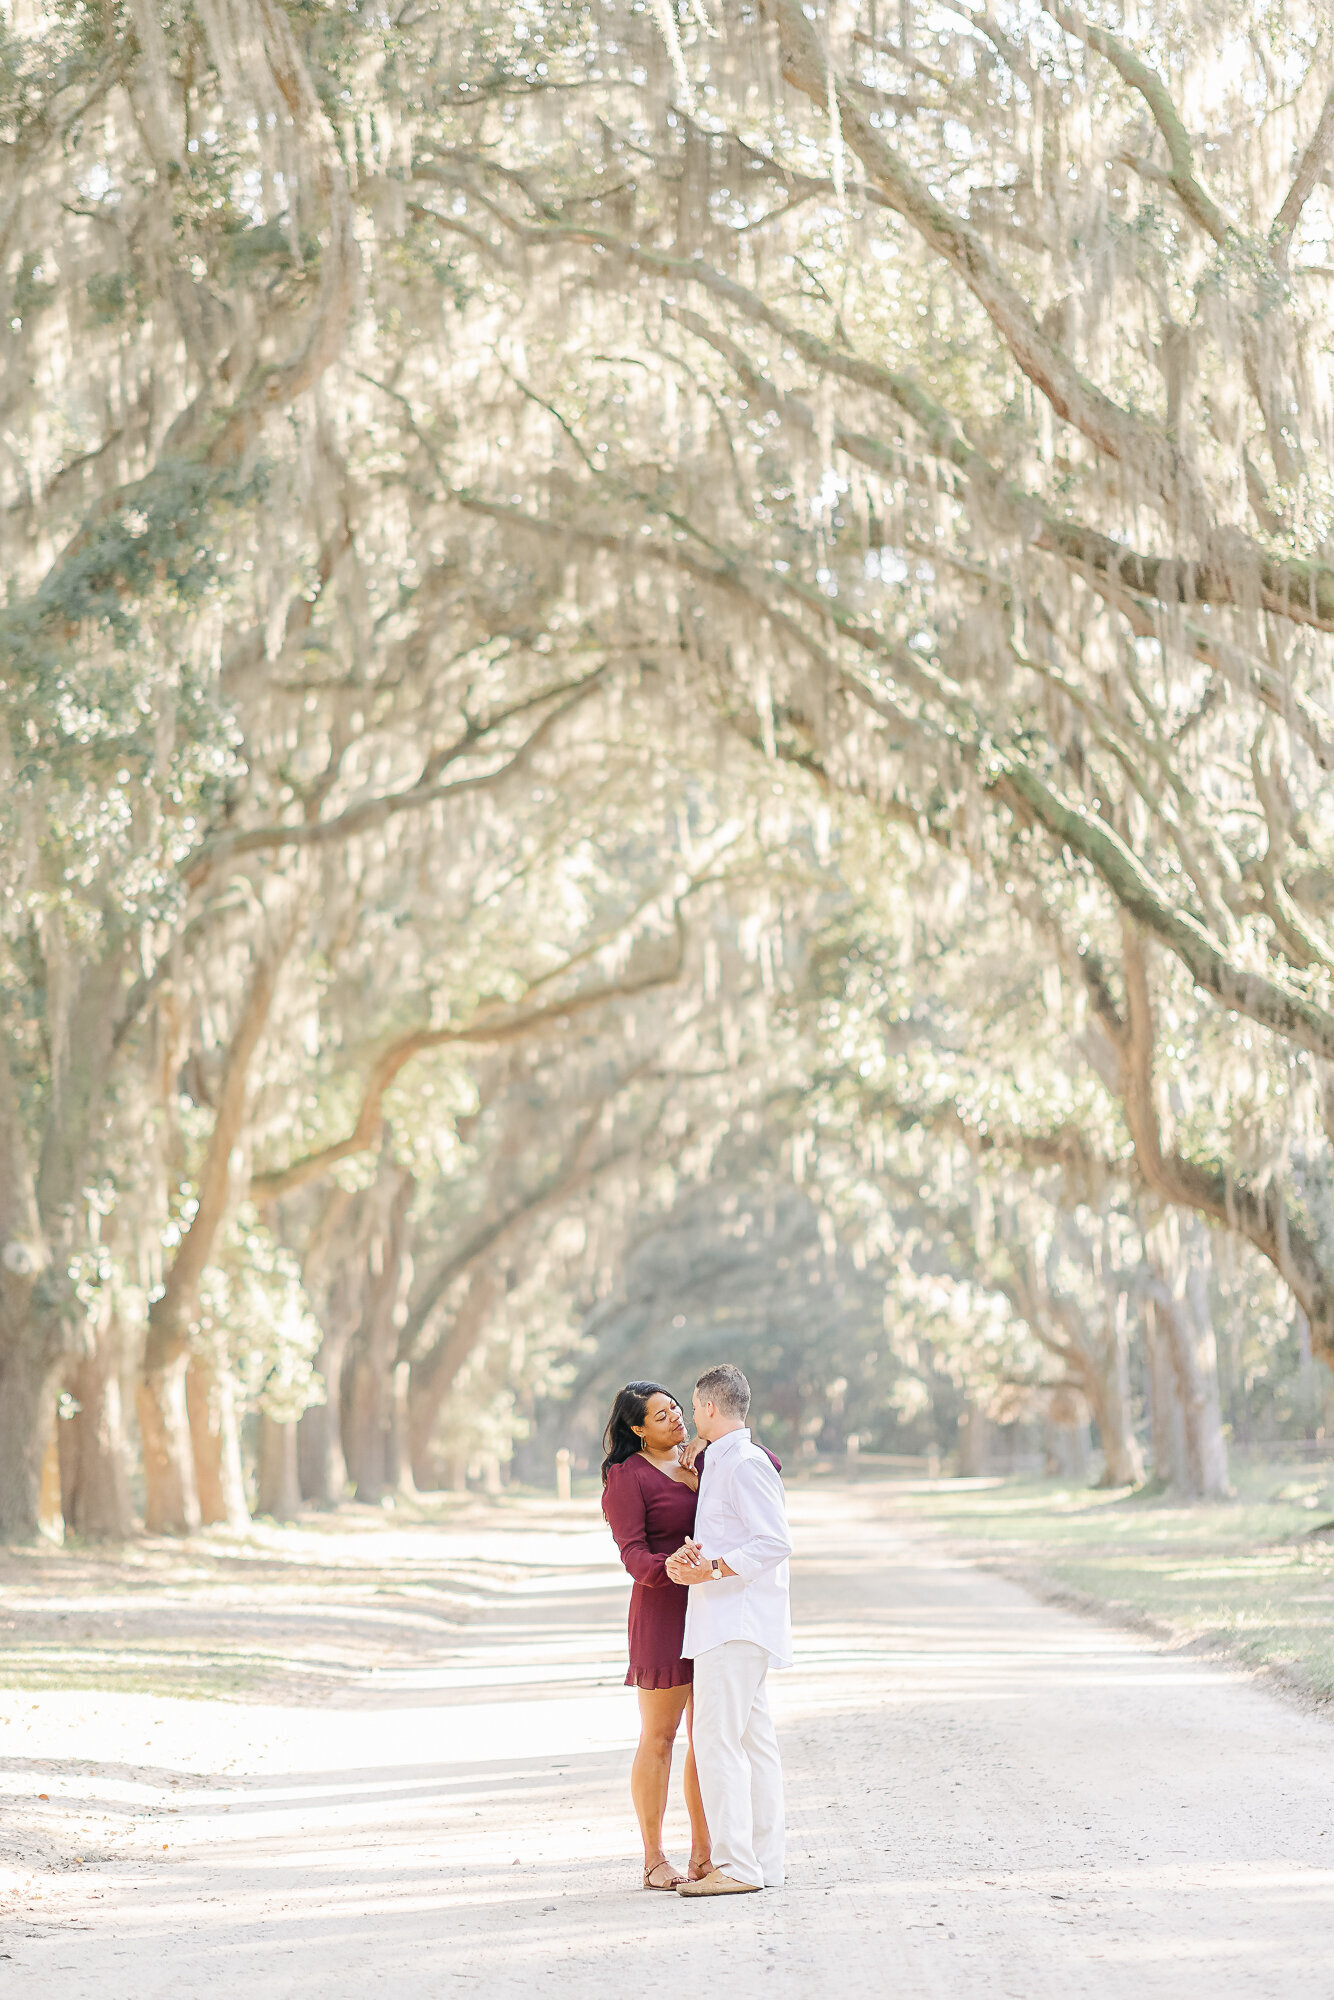 Light and Airy Engagement Session at Wormsloe Plantation in Savannah GA.